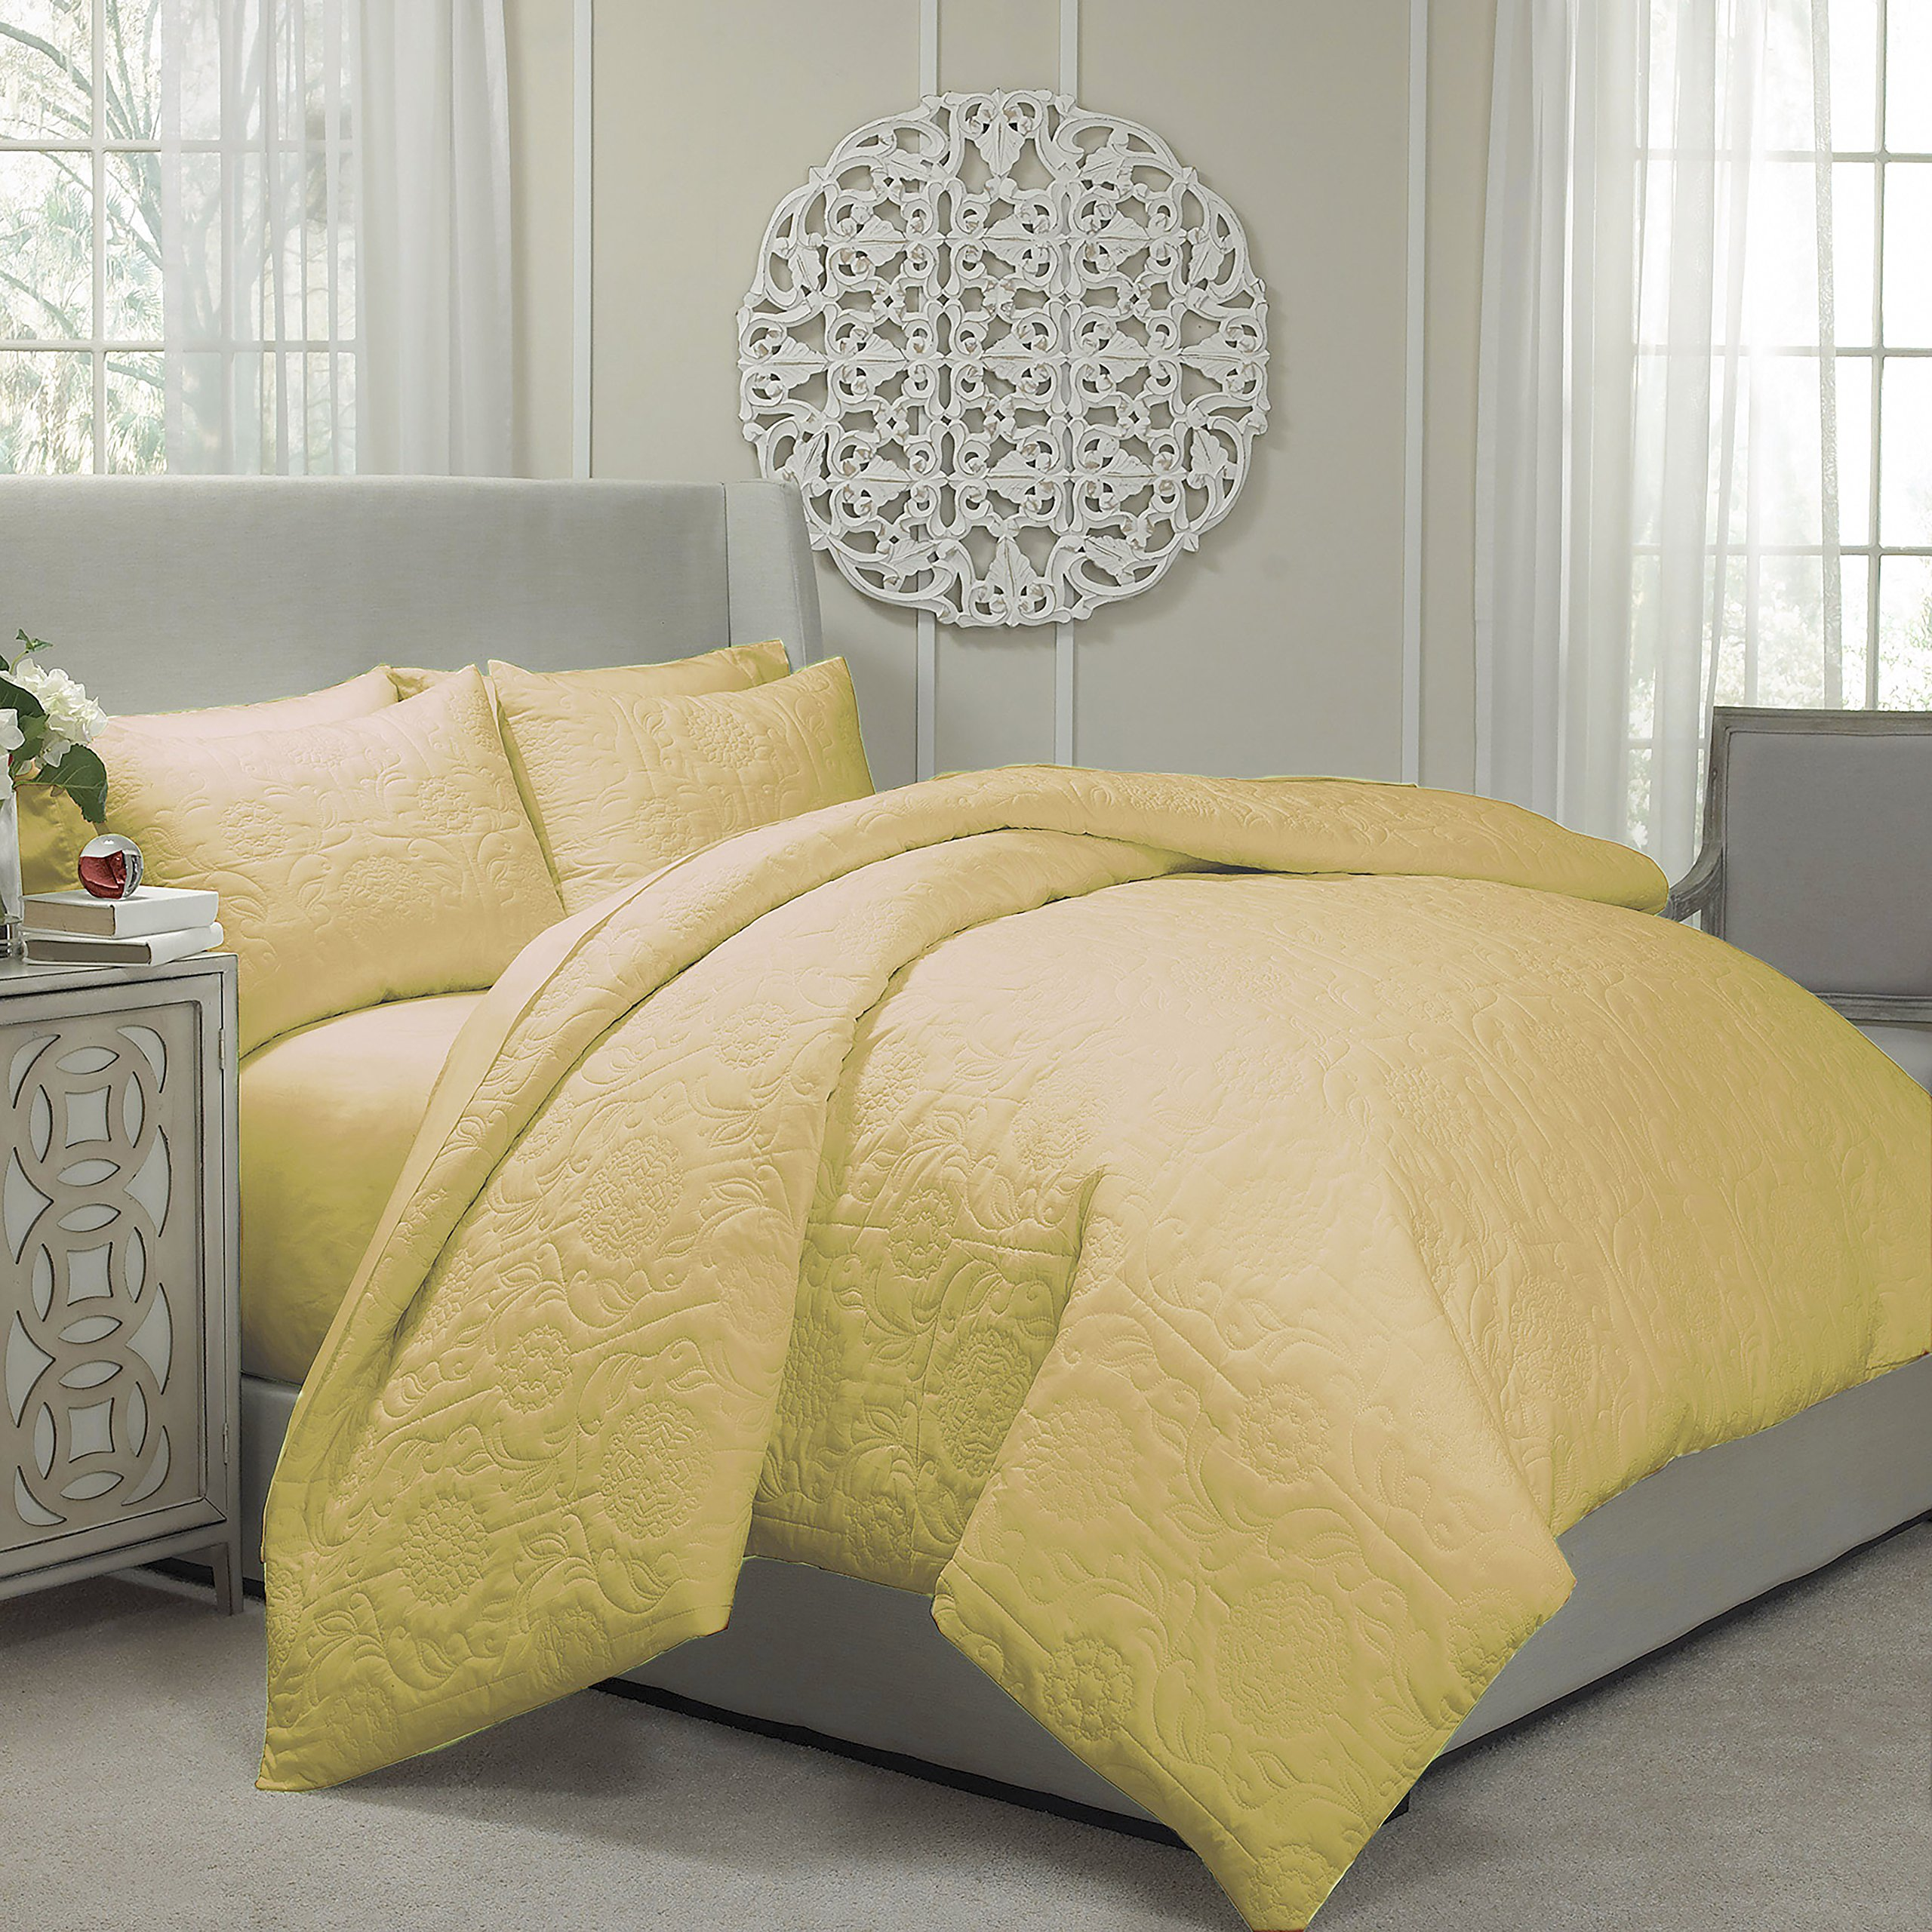 Vue 13811BEDDKNGGOL Barcelona 104-Inch by 90-Inch Quilted Coverlet and Duvet King Ensemble, Gold